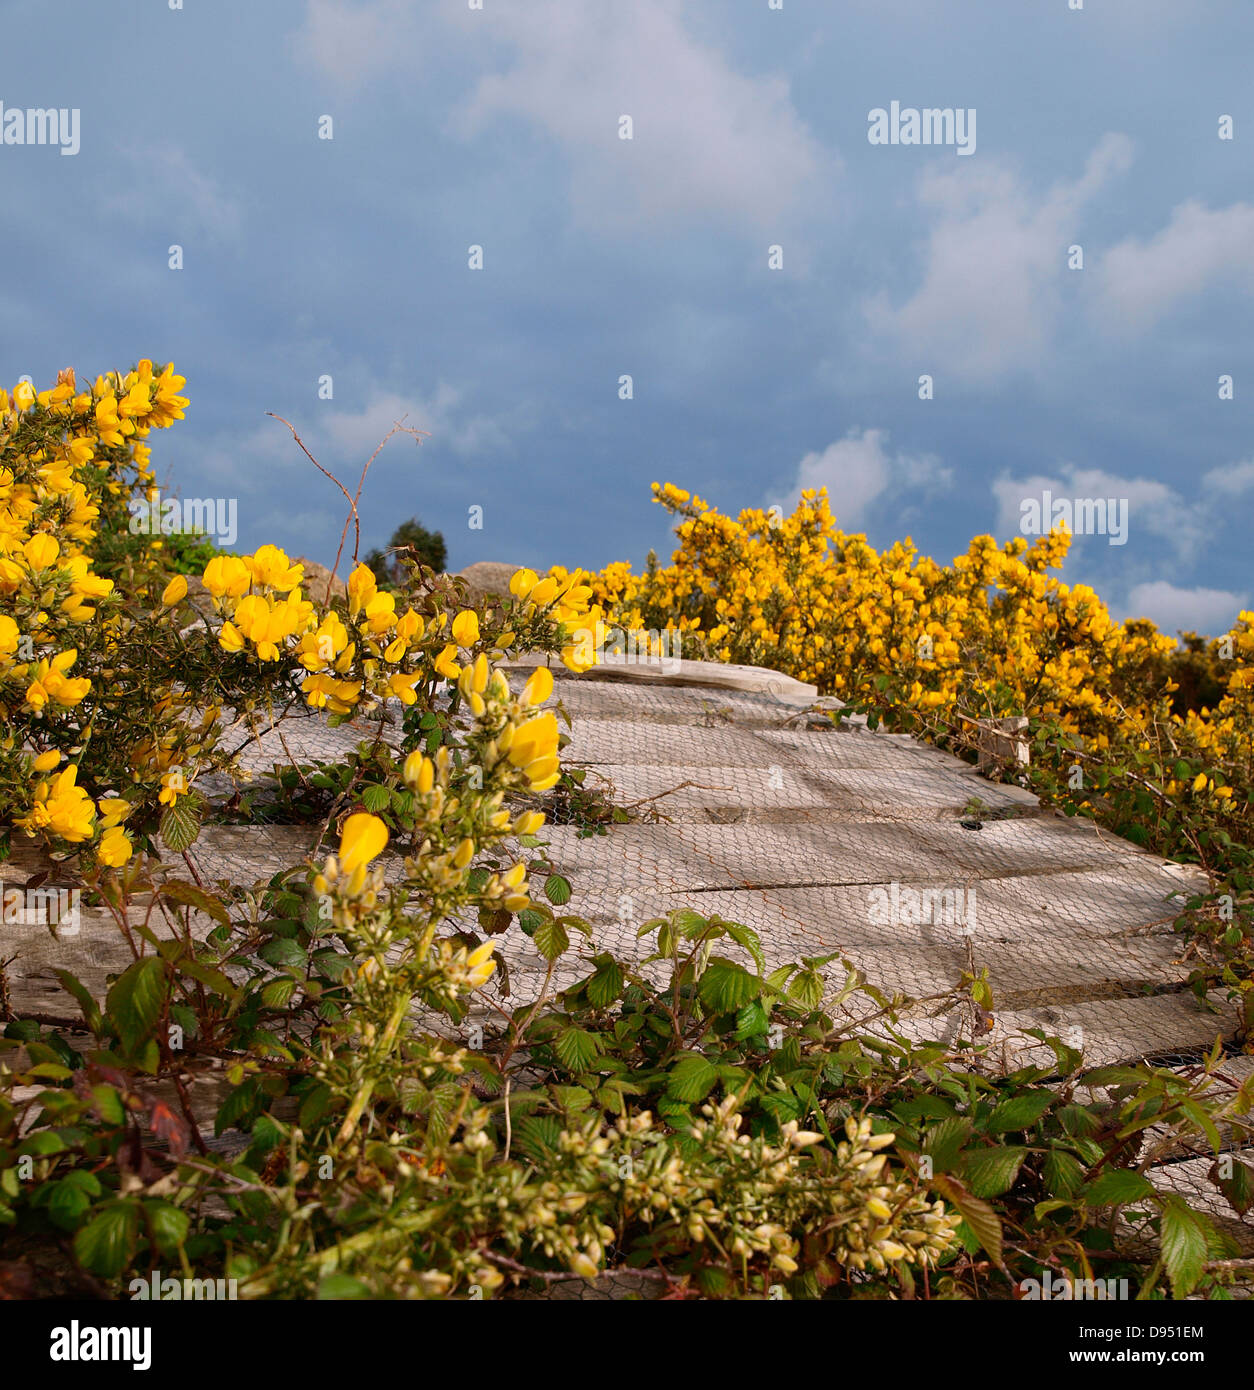 wooden ramp to freeride withGorses, planks and sky - Stock Image